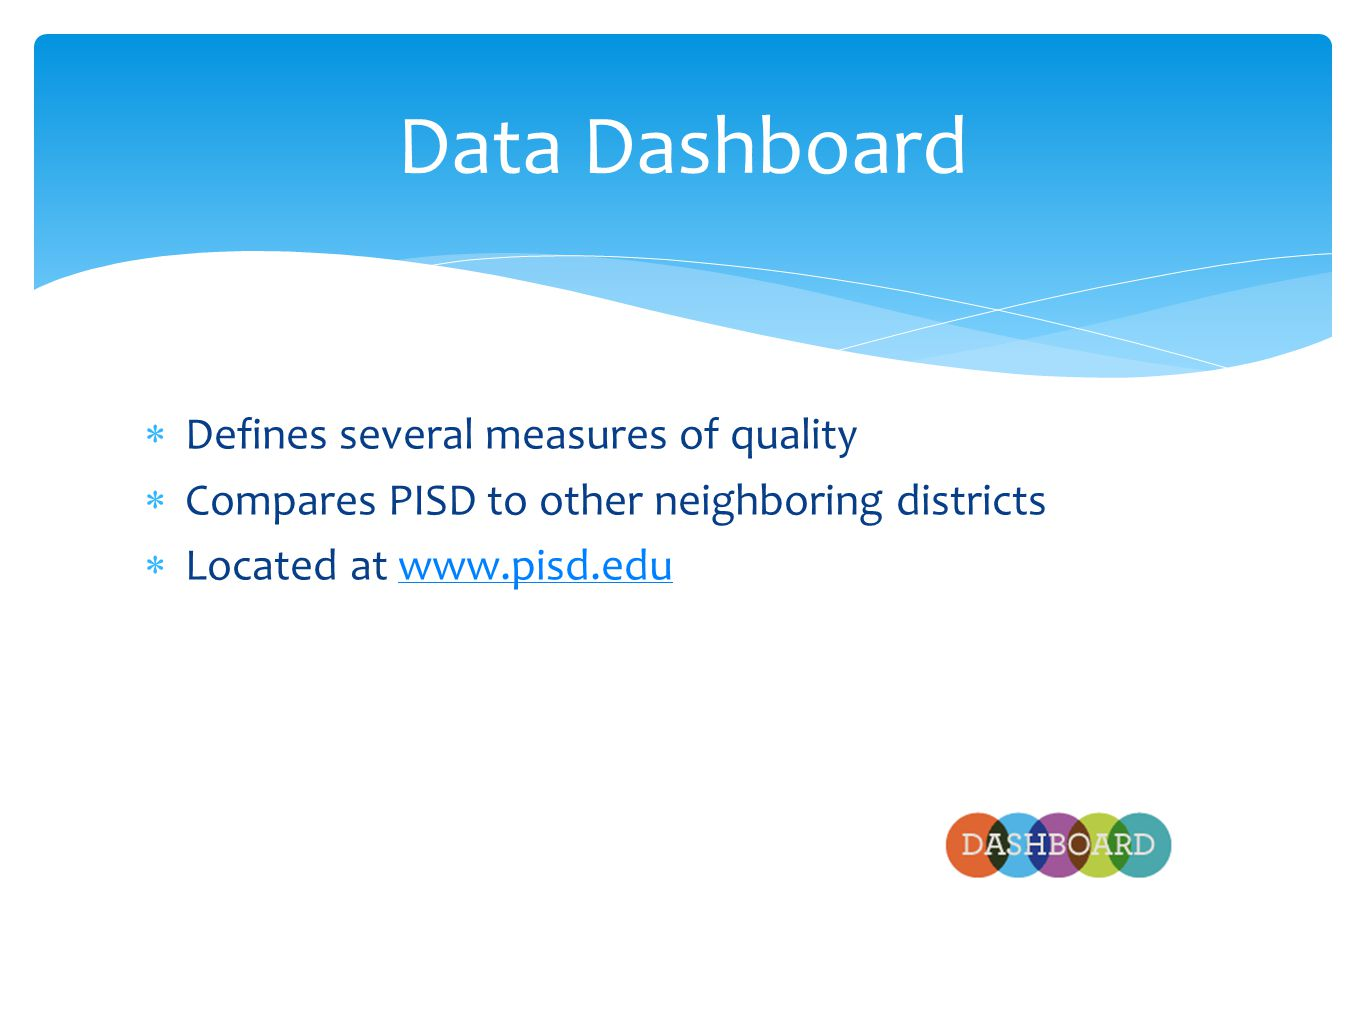  Defines several measures of quality  Compares PISD to other neighboring districts  Located at www.pisd.eduwww.pisd.edu Data Dashboard